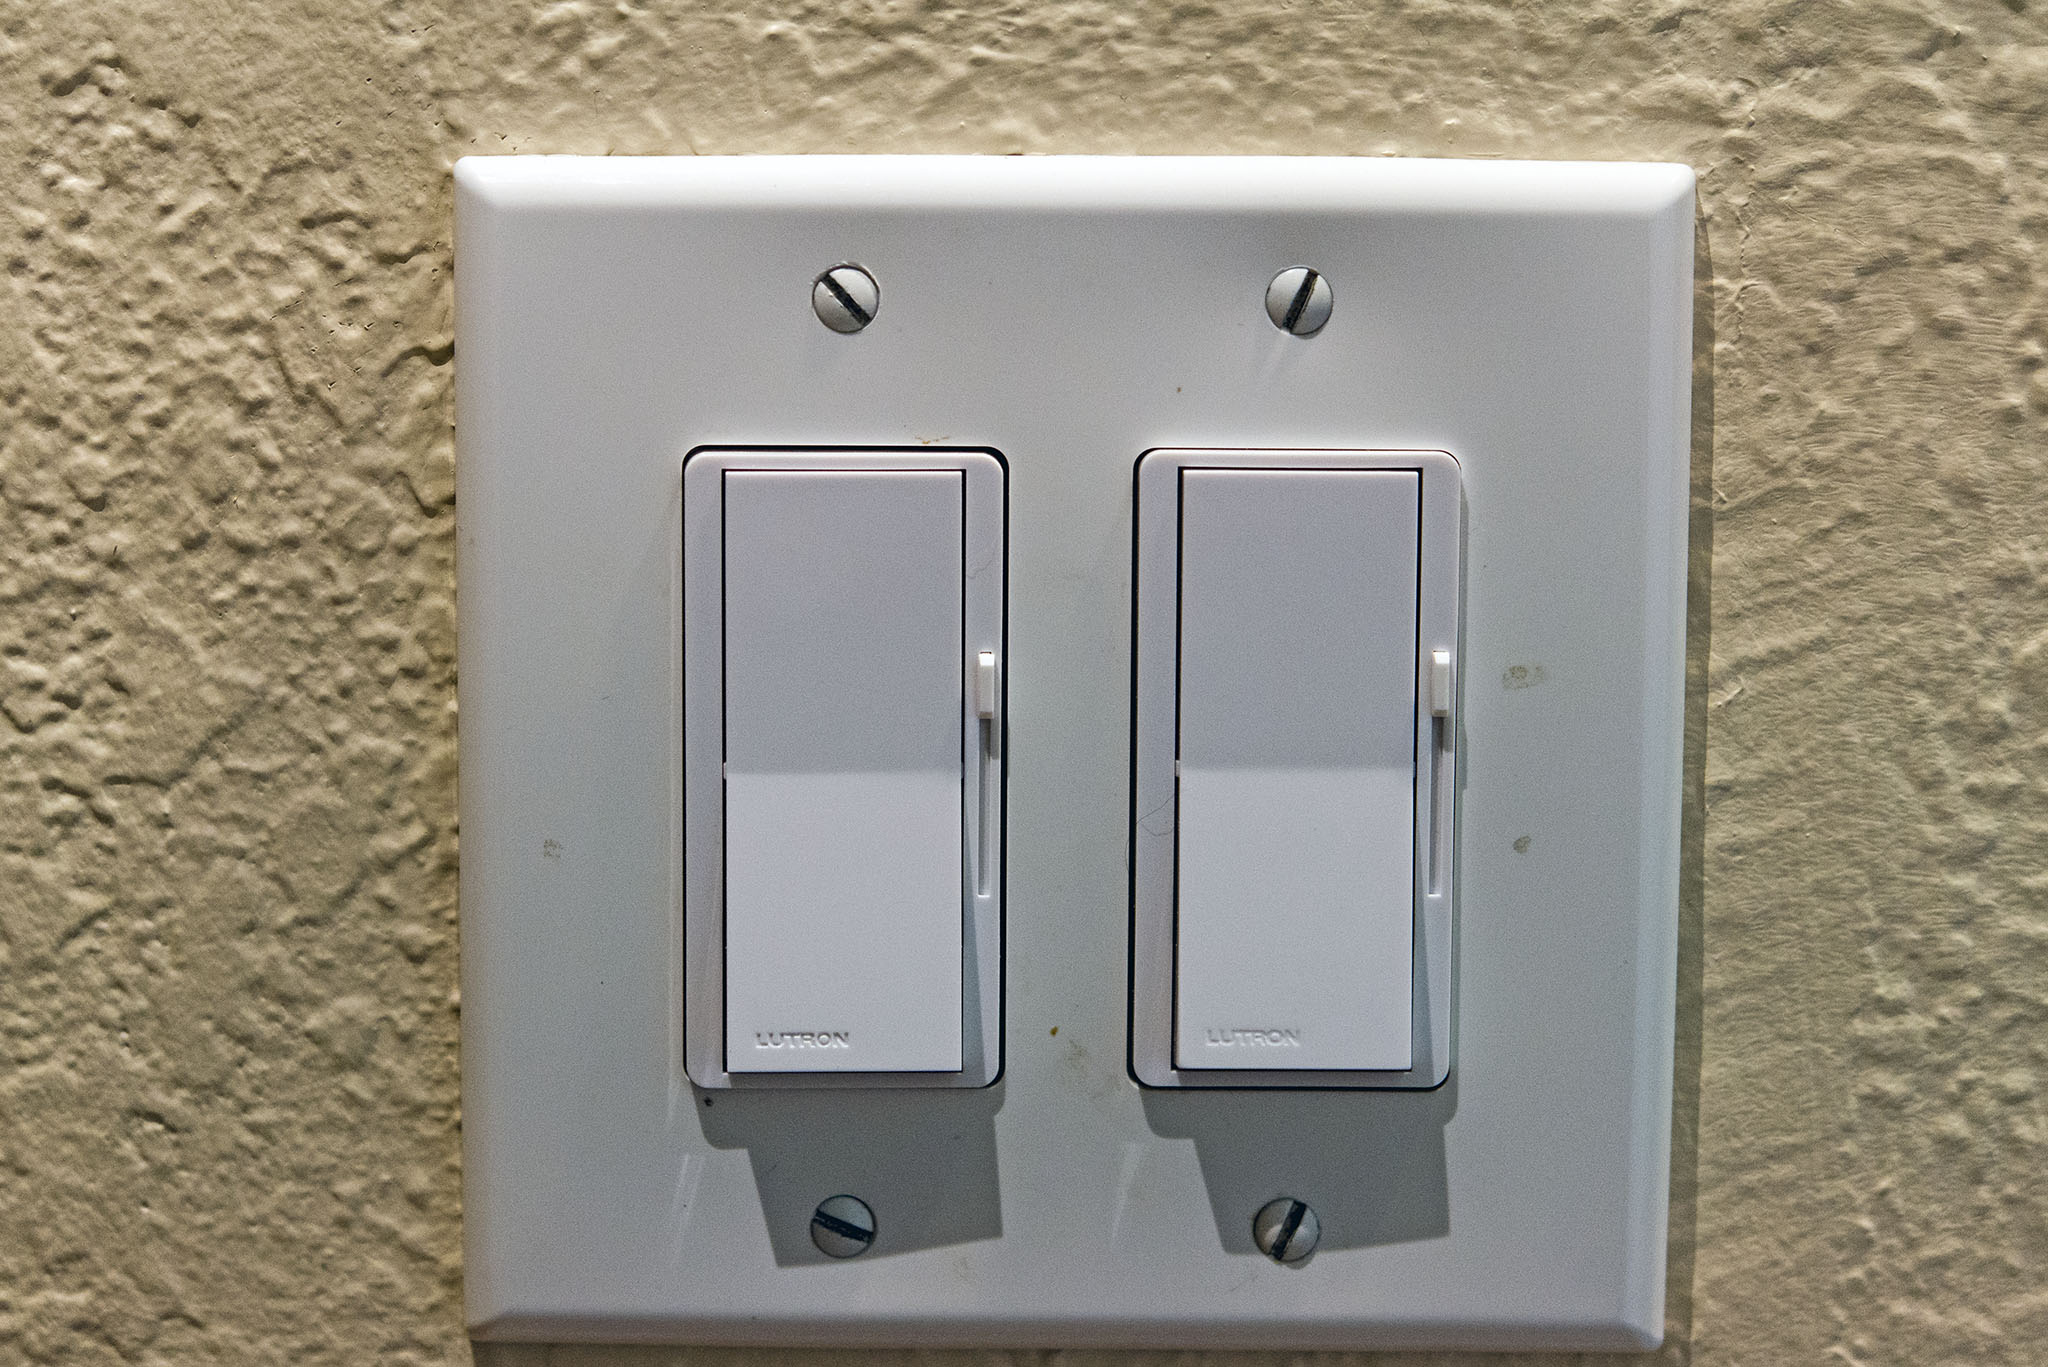 Dimmer Switch 3 Position Lutron Led Dimmer Switches For Lights Wiring